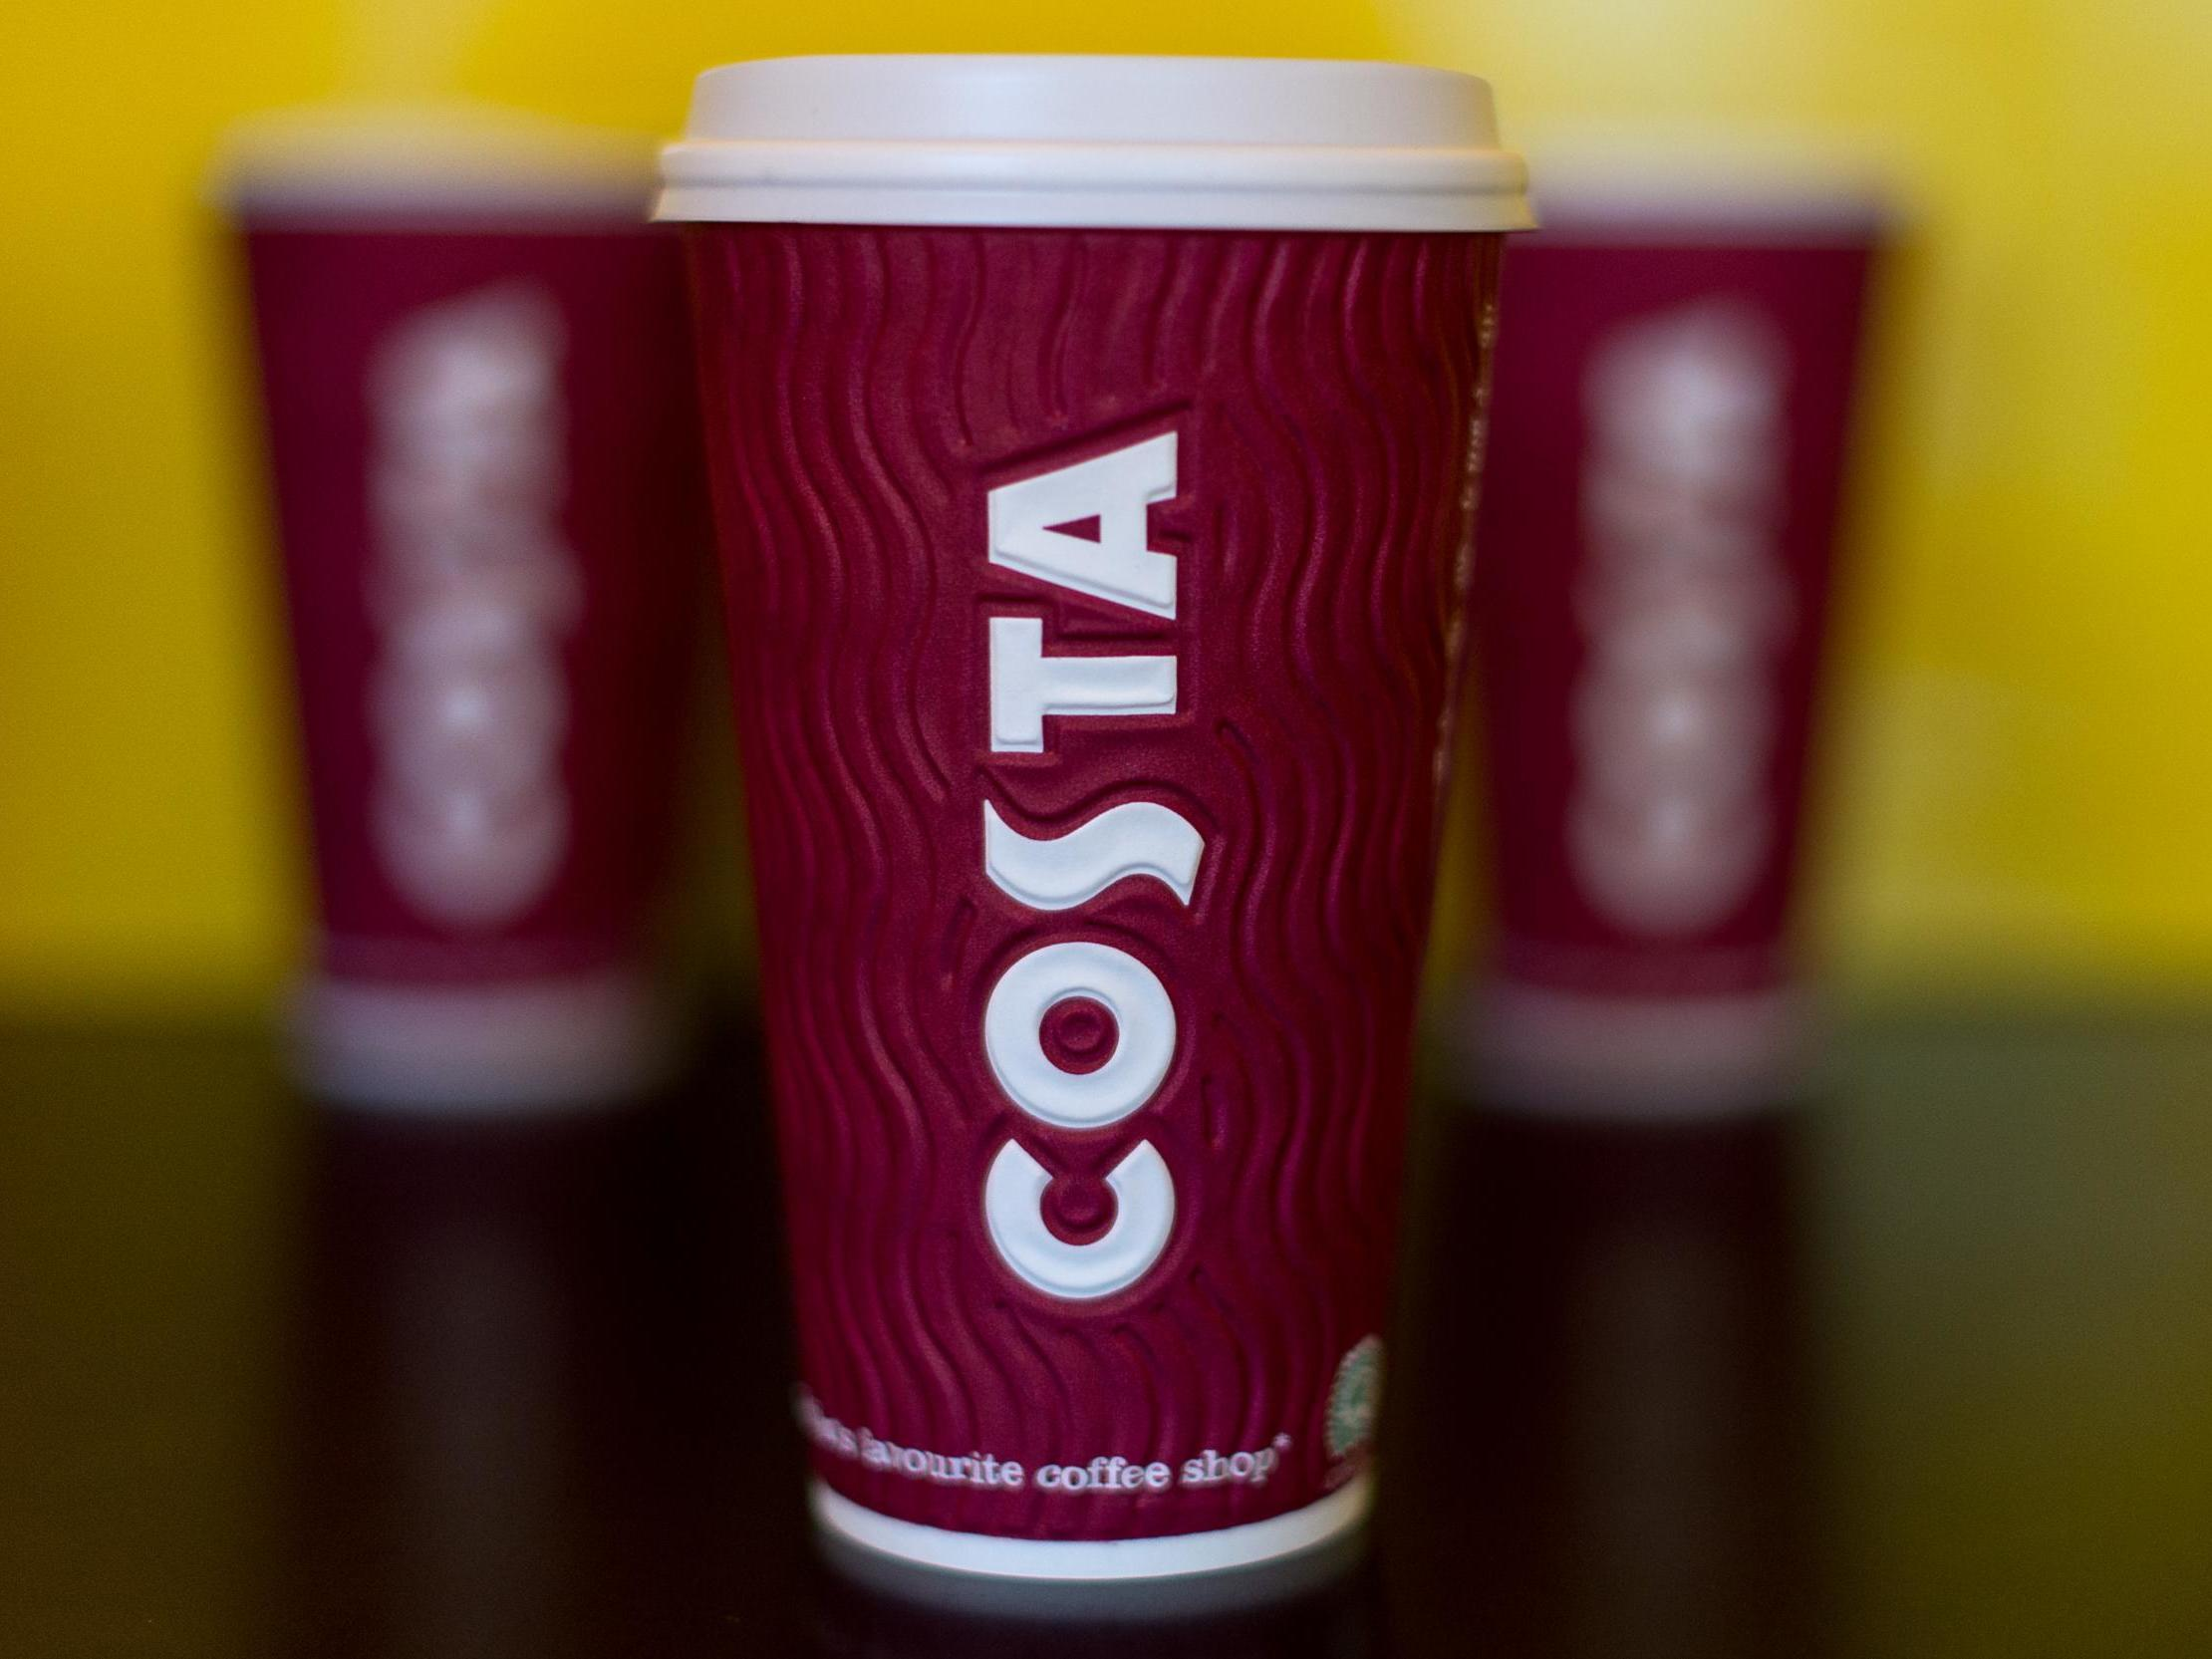 Costa Express is offering free coffee for an entire day 1